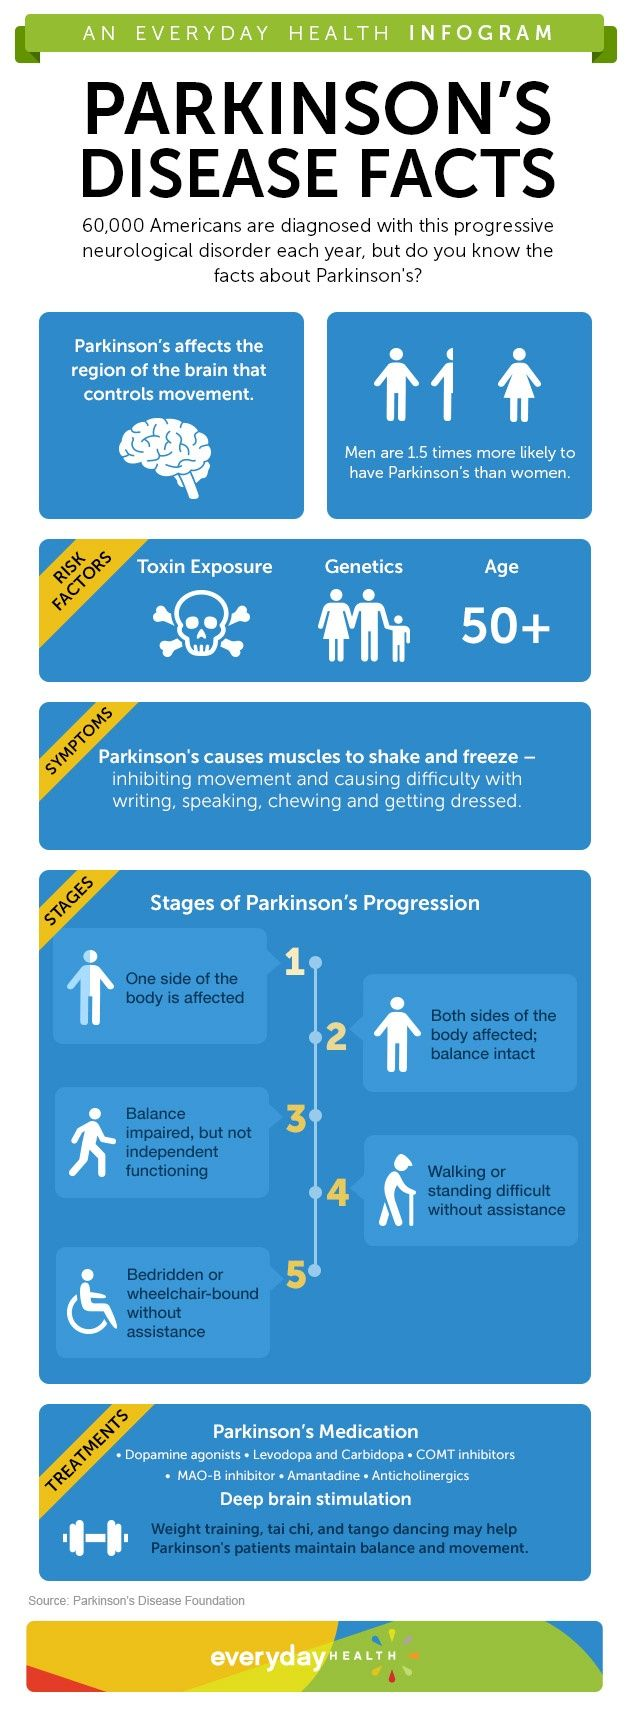 impact of health inequalities on parkinsons disease patient Parkinson's disease patients benefit from physical activity date: november 15, 2016 source: ios press summary: people living with parkinson's disease (pd) can benefit from being physically .